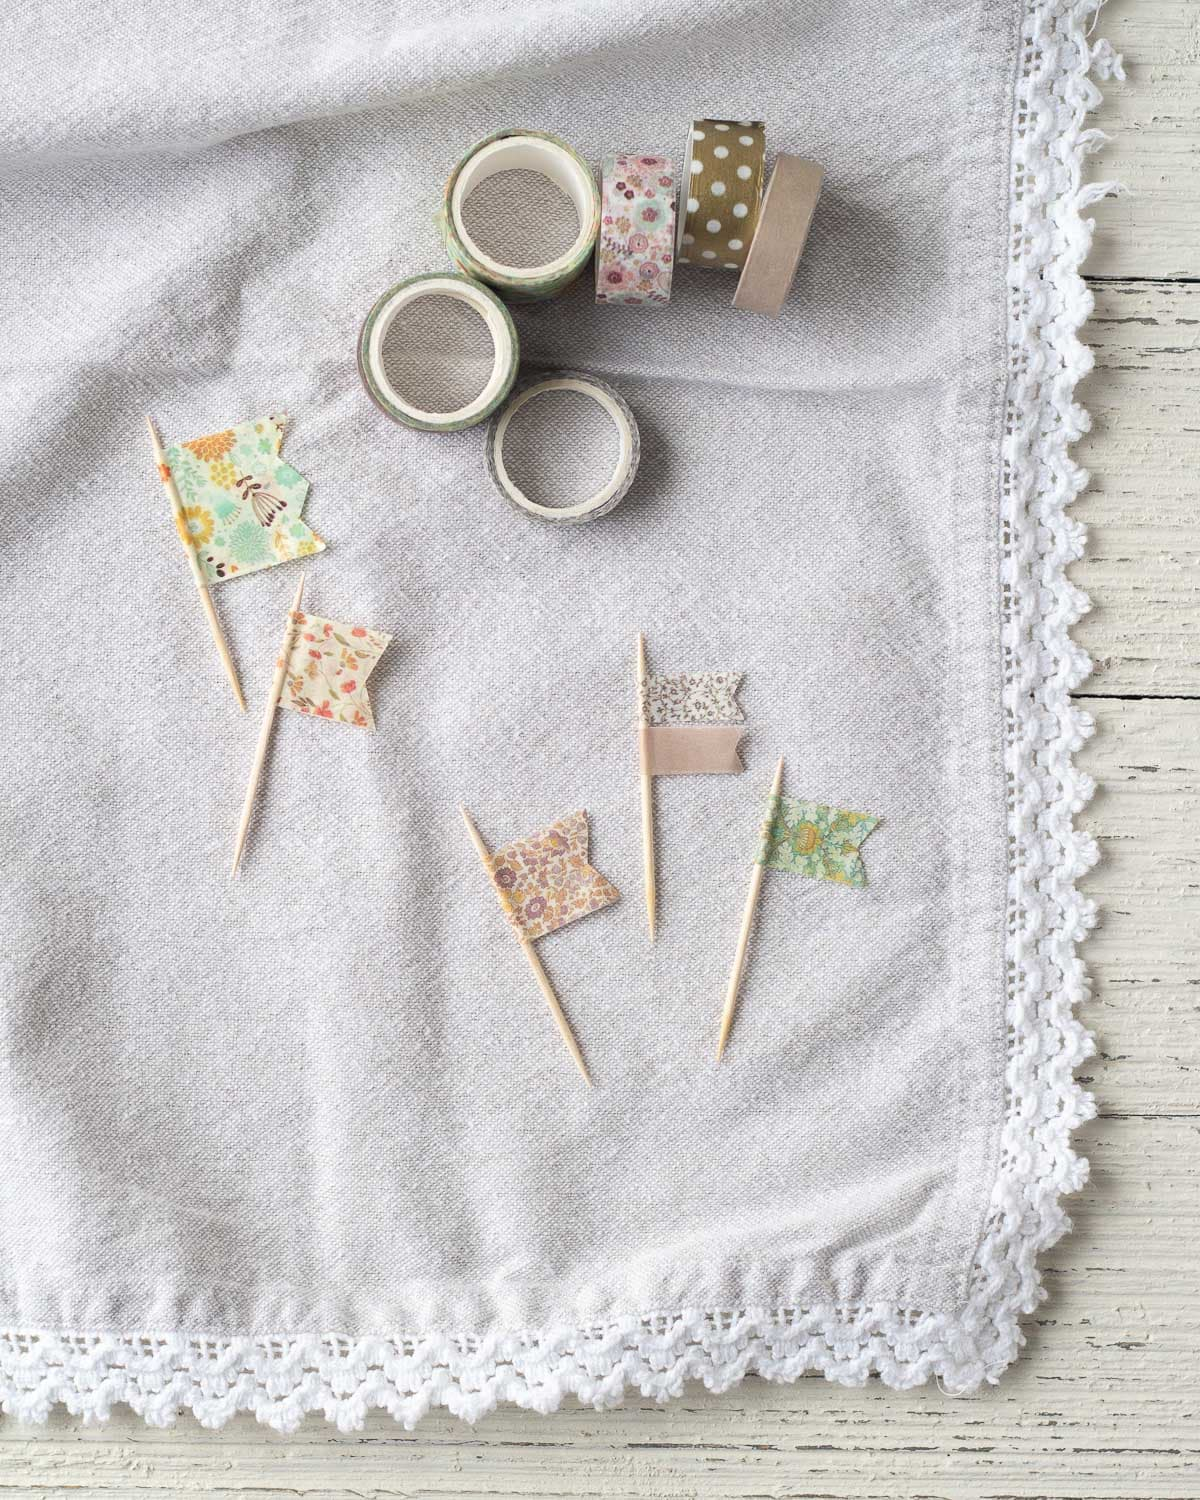 Washi tape flags arranged on linen fabric.